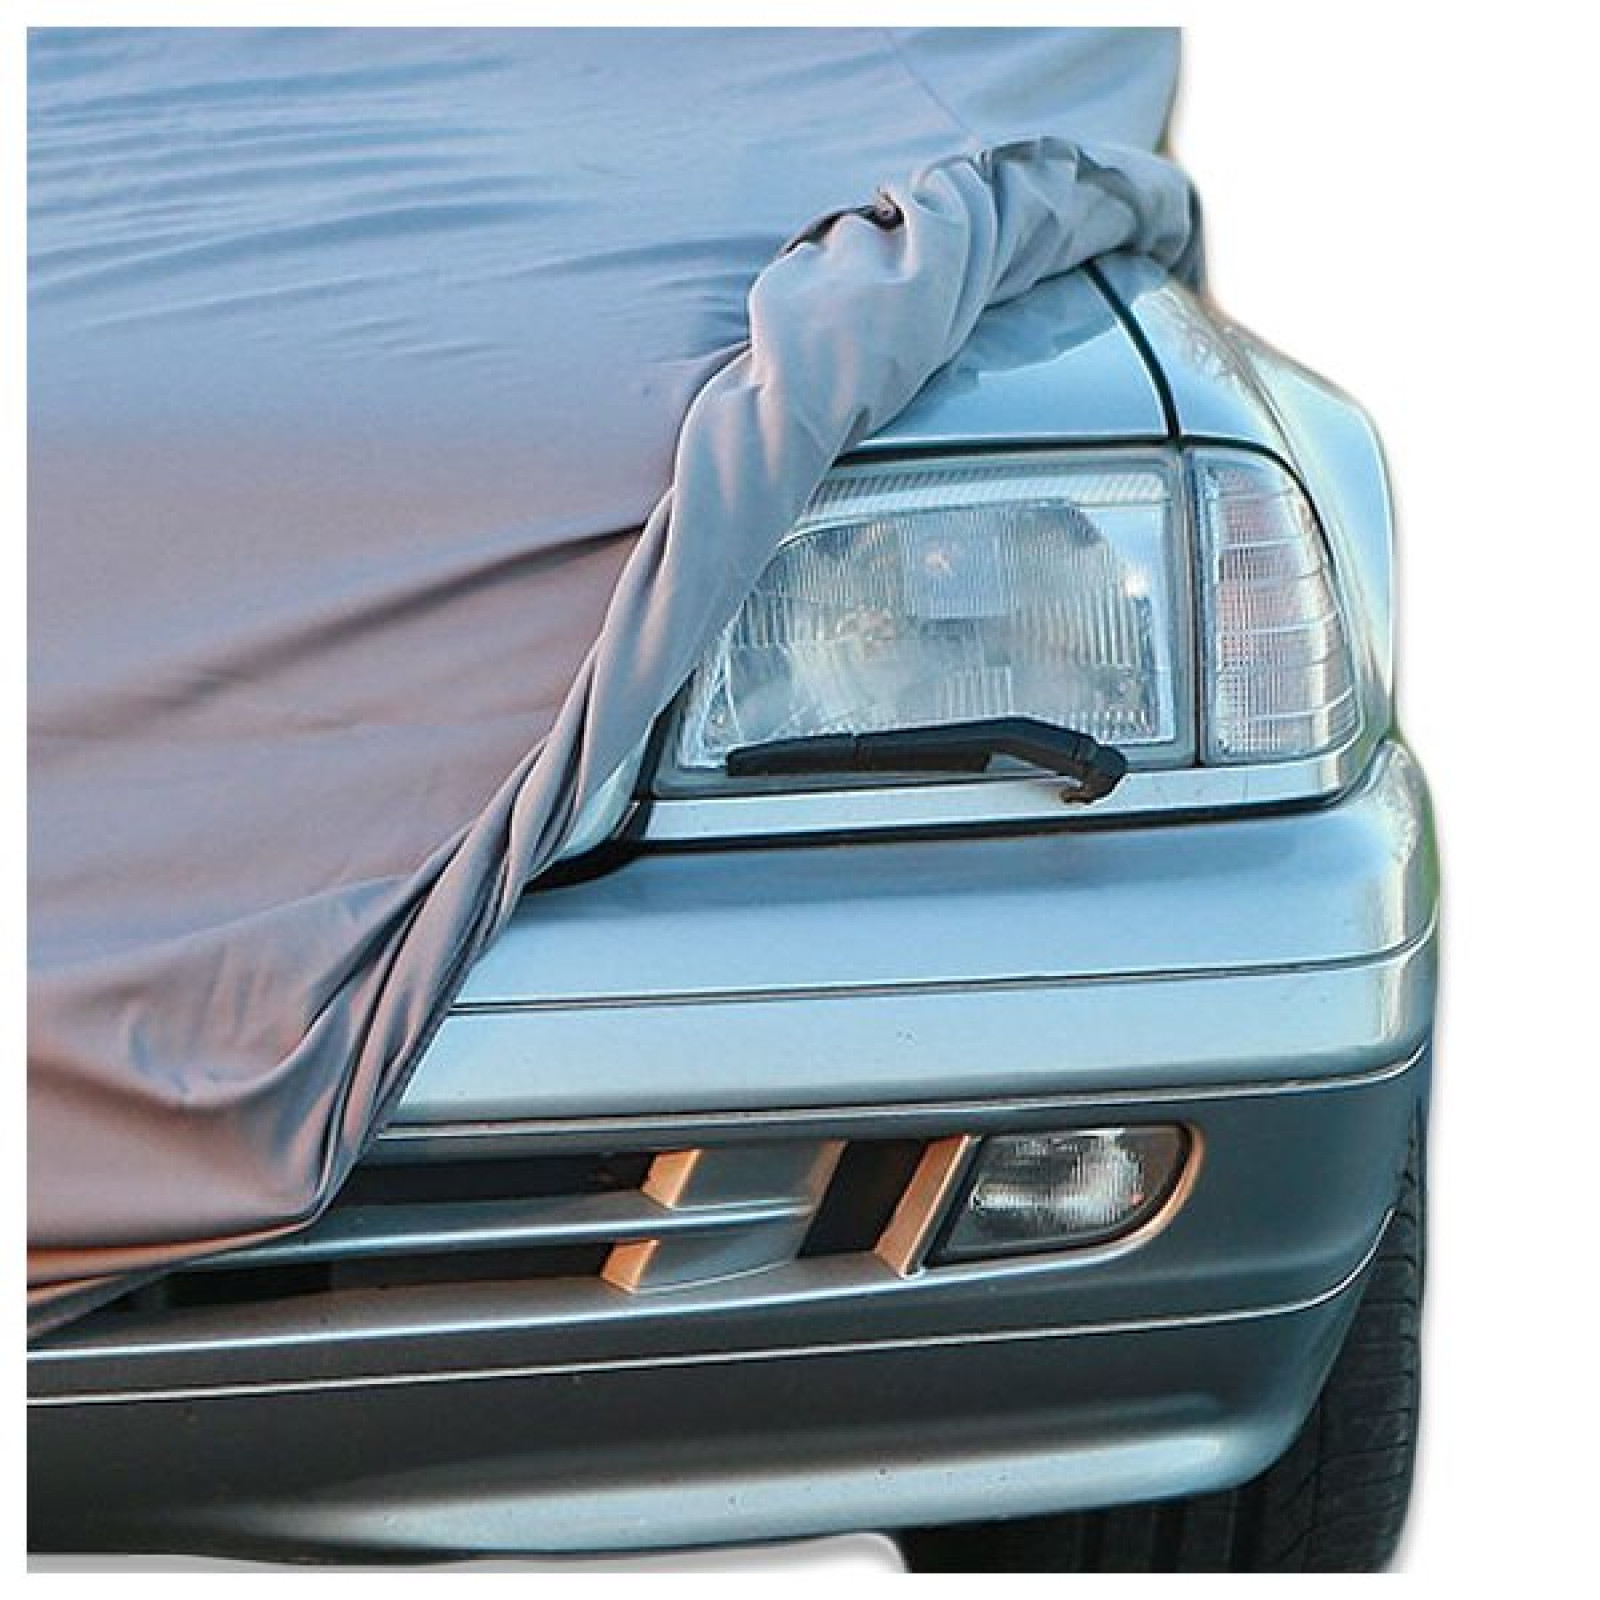 Mercedes benz sl r129 ultimate stretchy outdoor car cover for Mercedes benz car covers